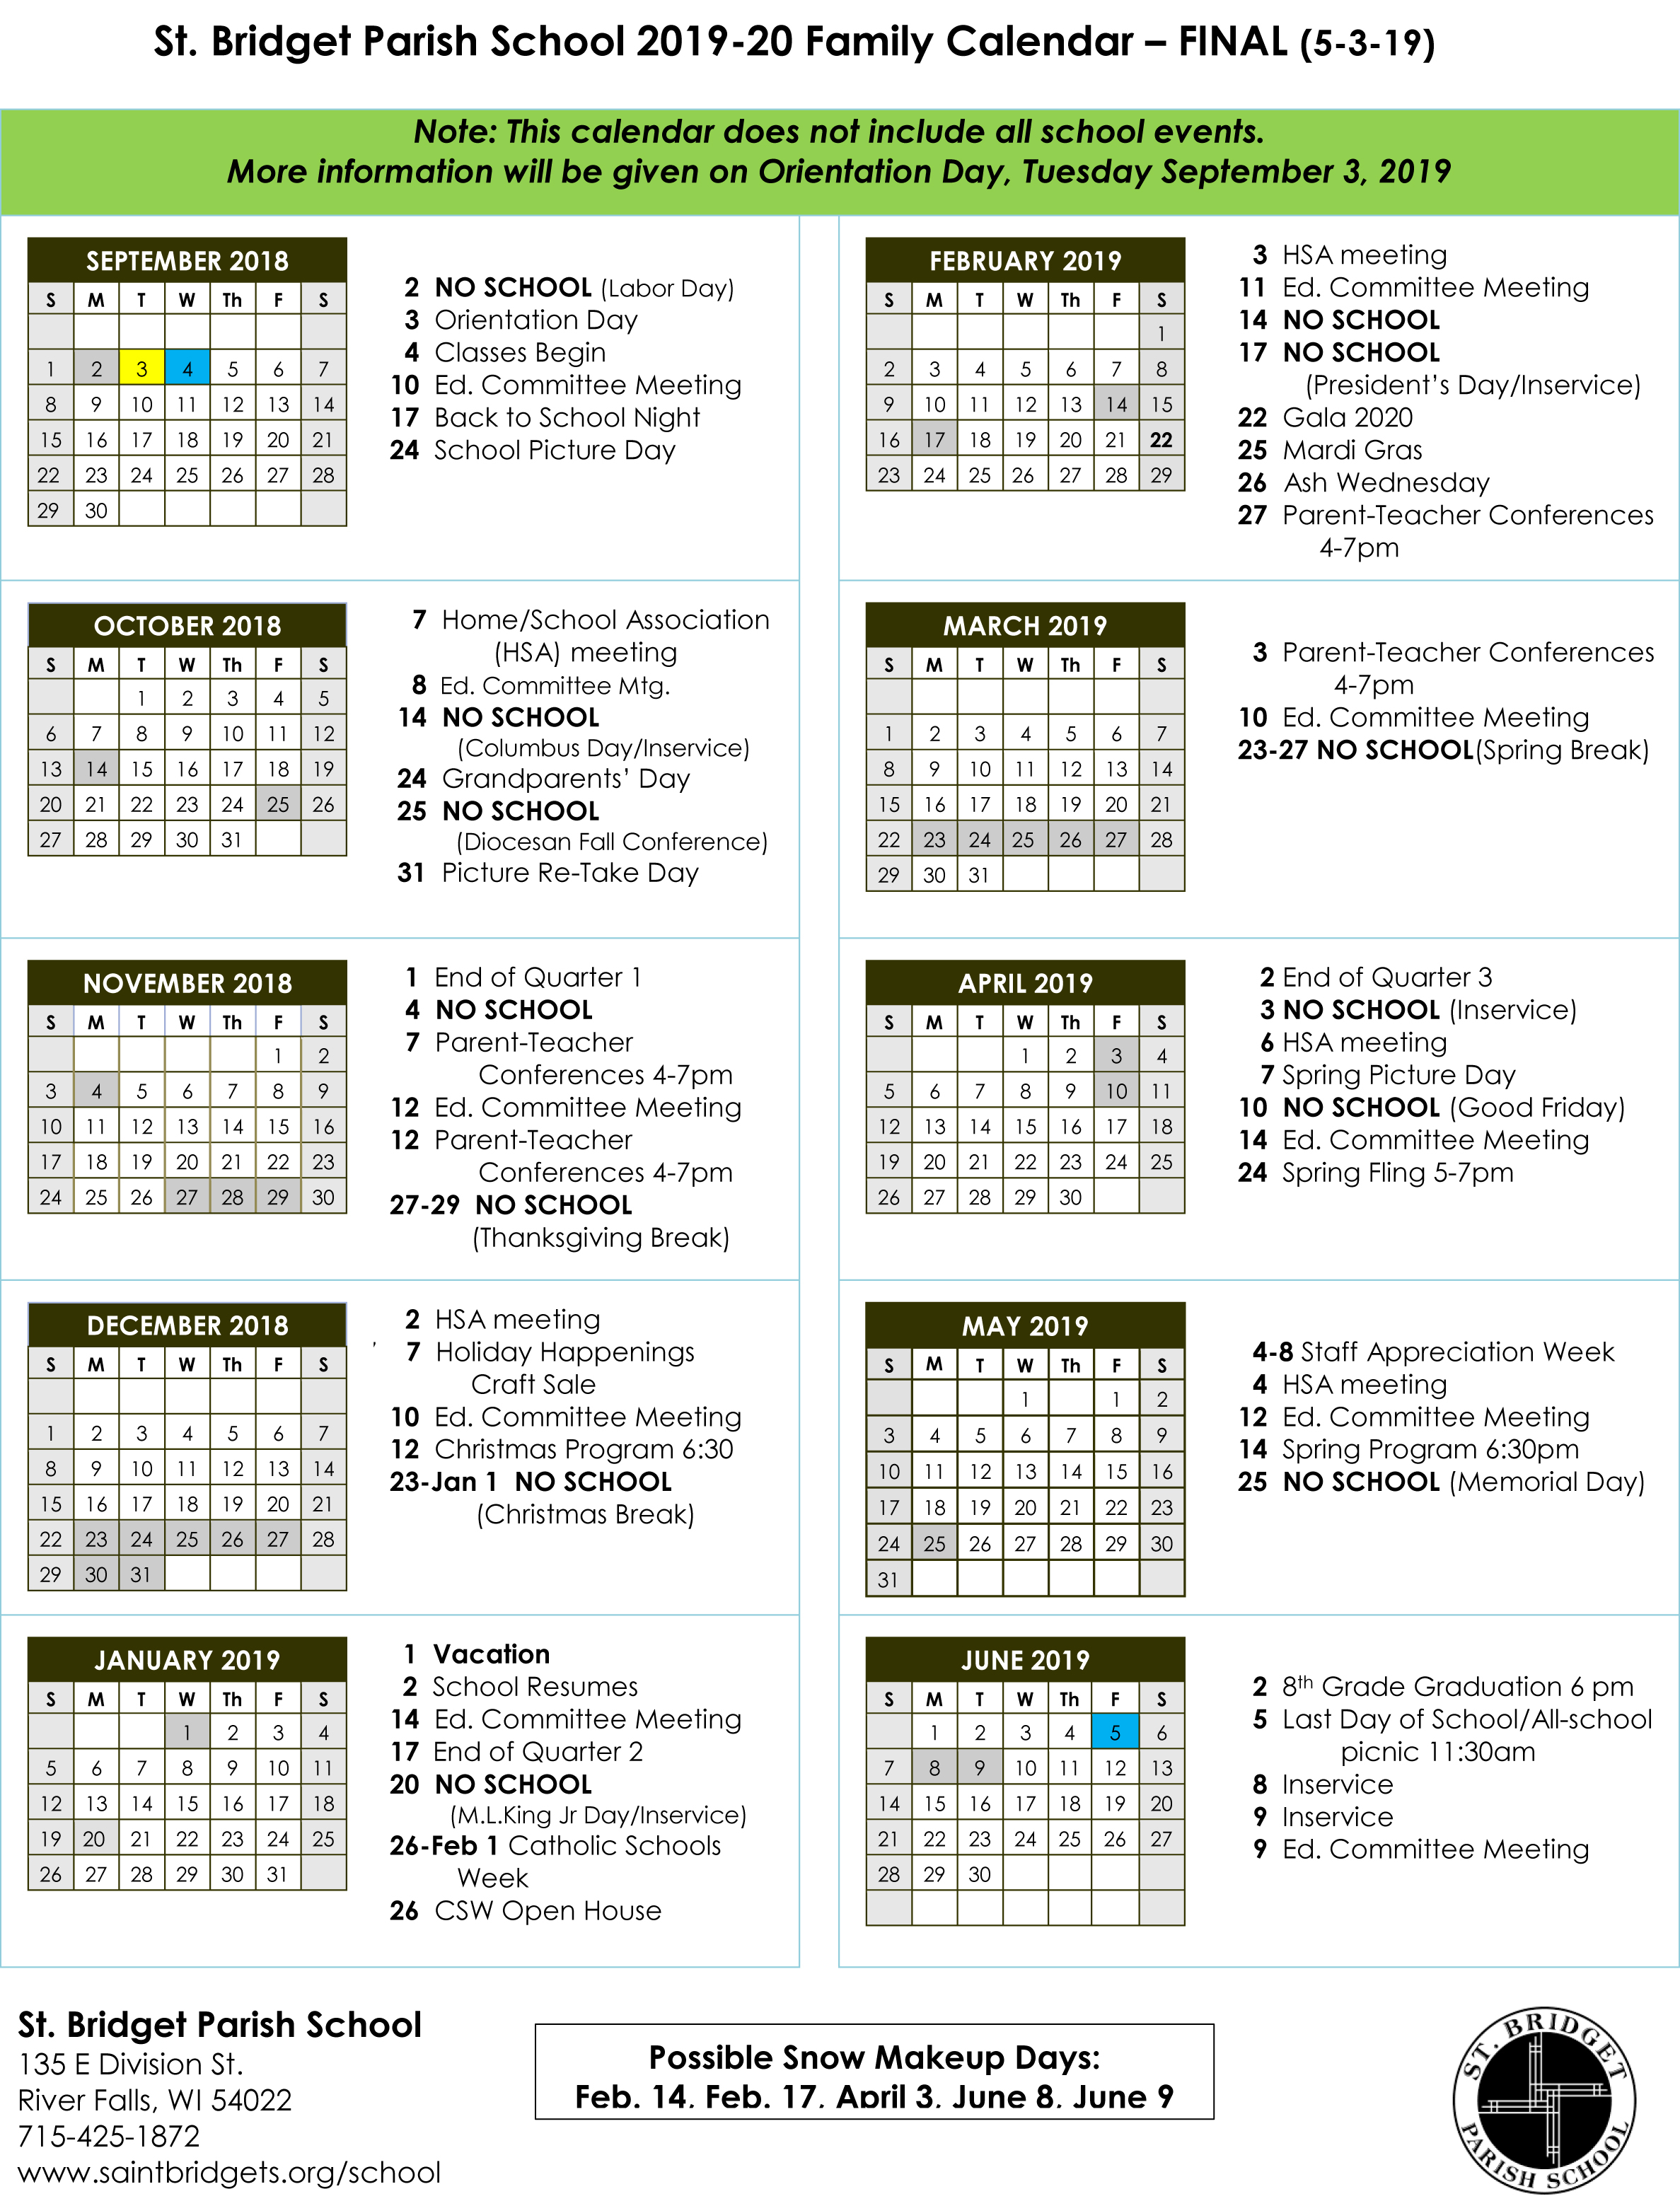 St. Bridget School Calendar - Saint Bridget Catholic Community with regard to Catholic Liturgical Calendar 2020 Pdf